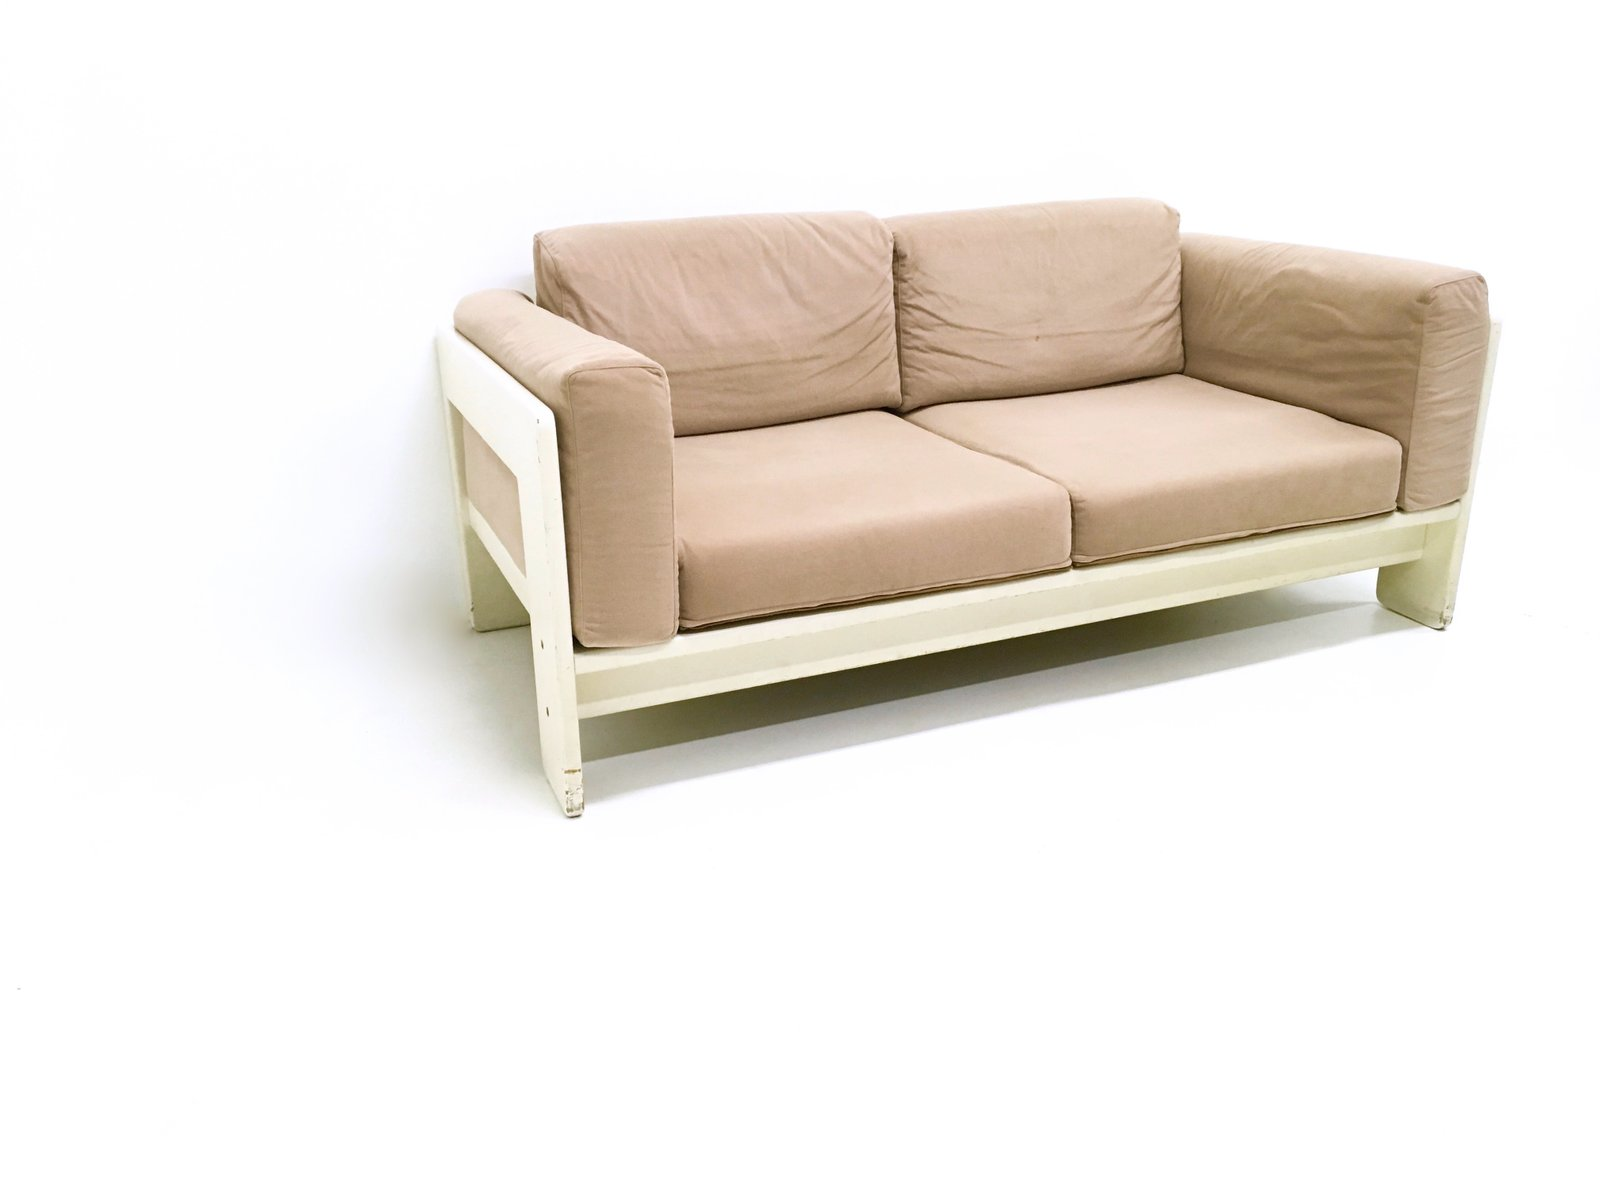 Bastiano Sofa By Tobia Scarpa For Knoll 1970s For Sale At